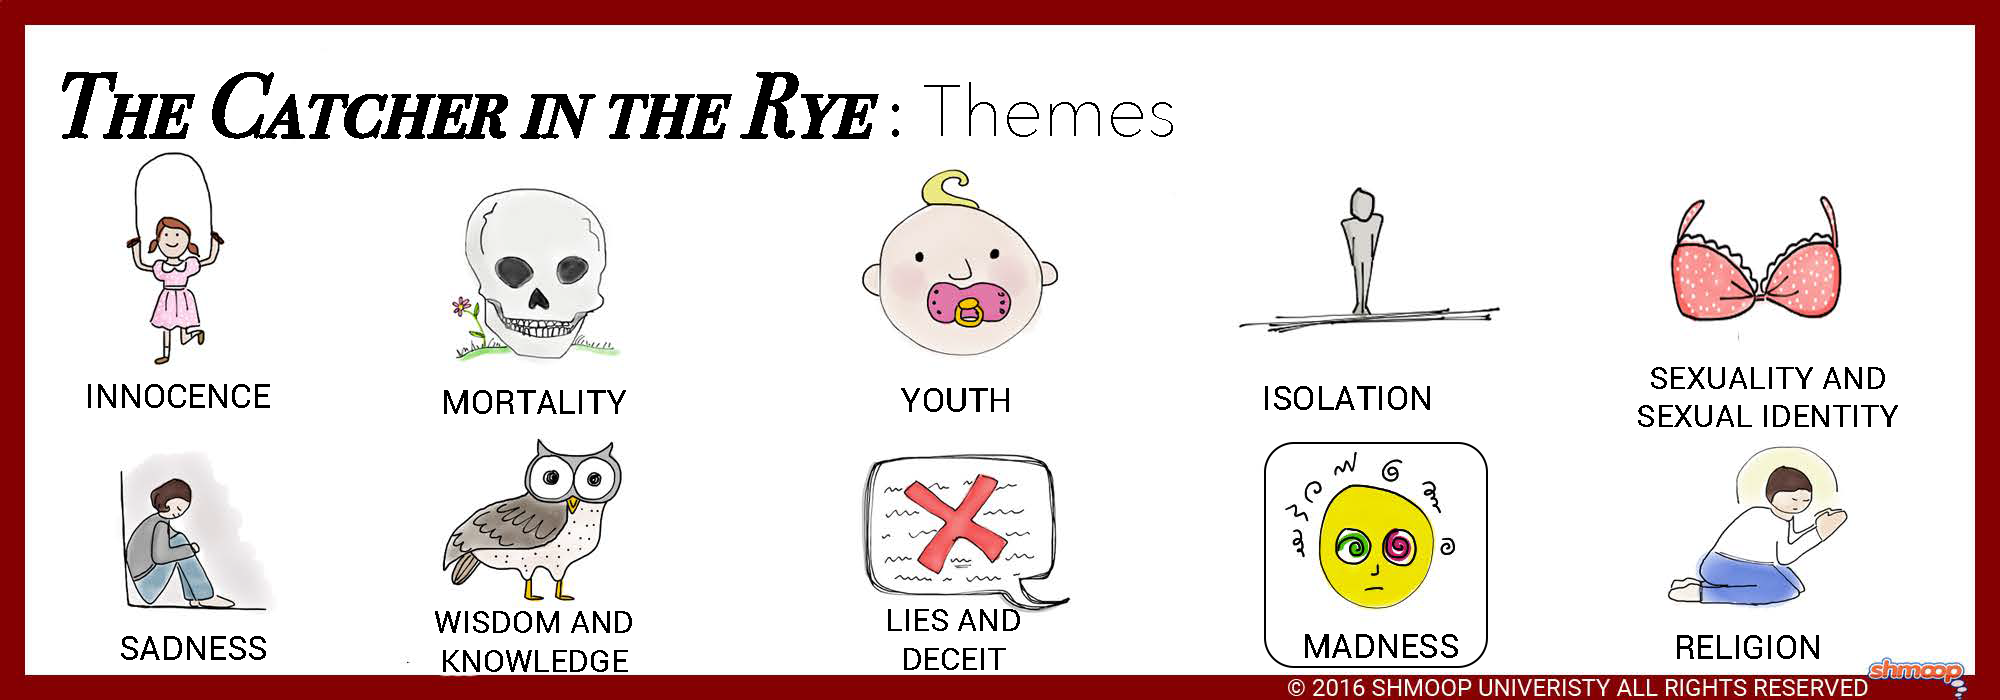 The Catcher In The Rye Theme Of Madness